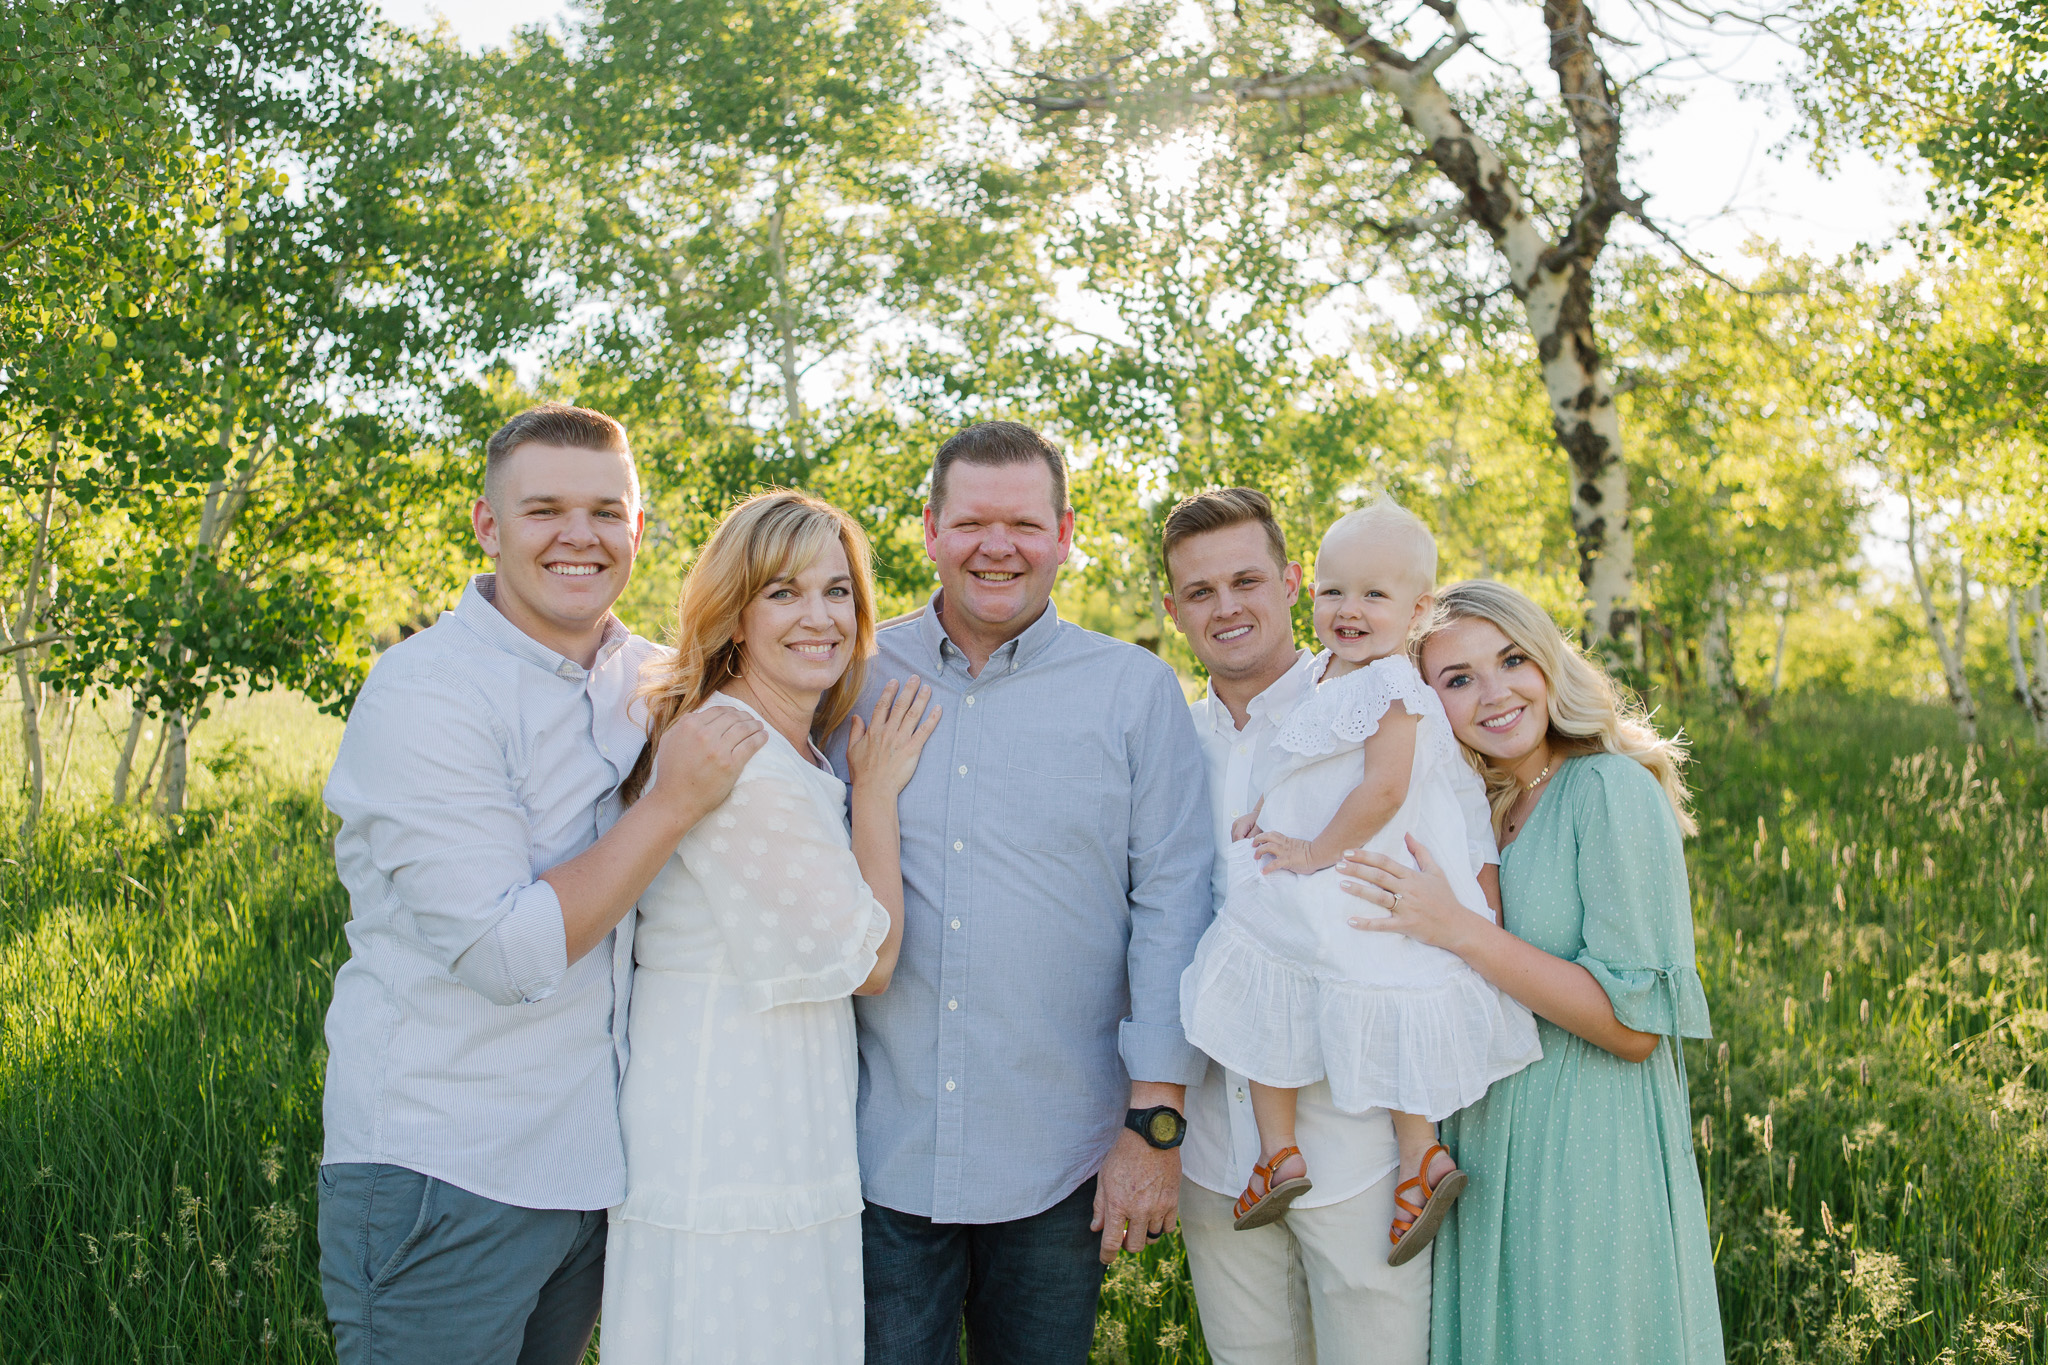 MortensonFamily_JTP2019_001.jpg